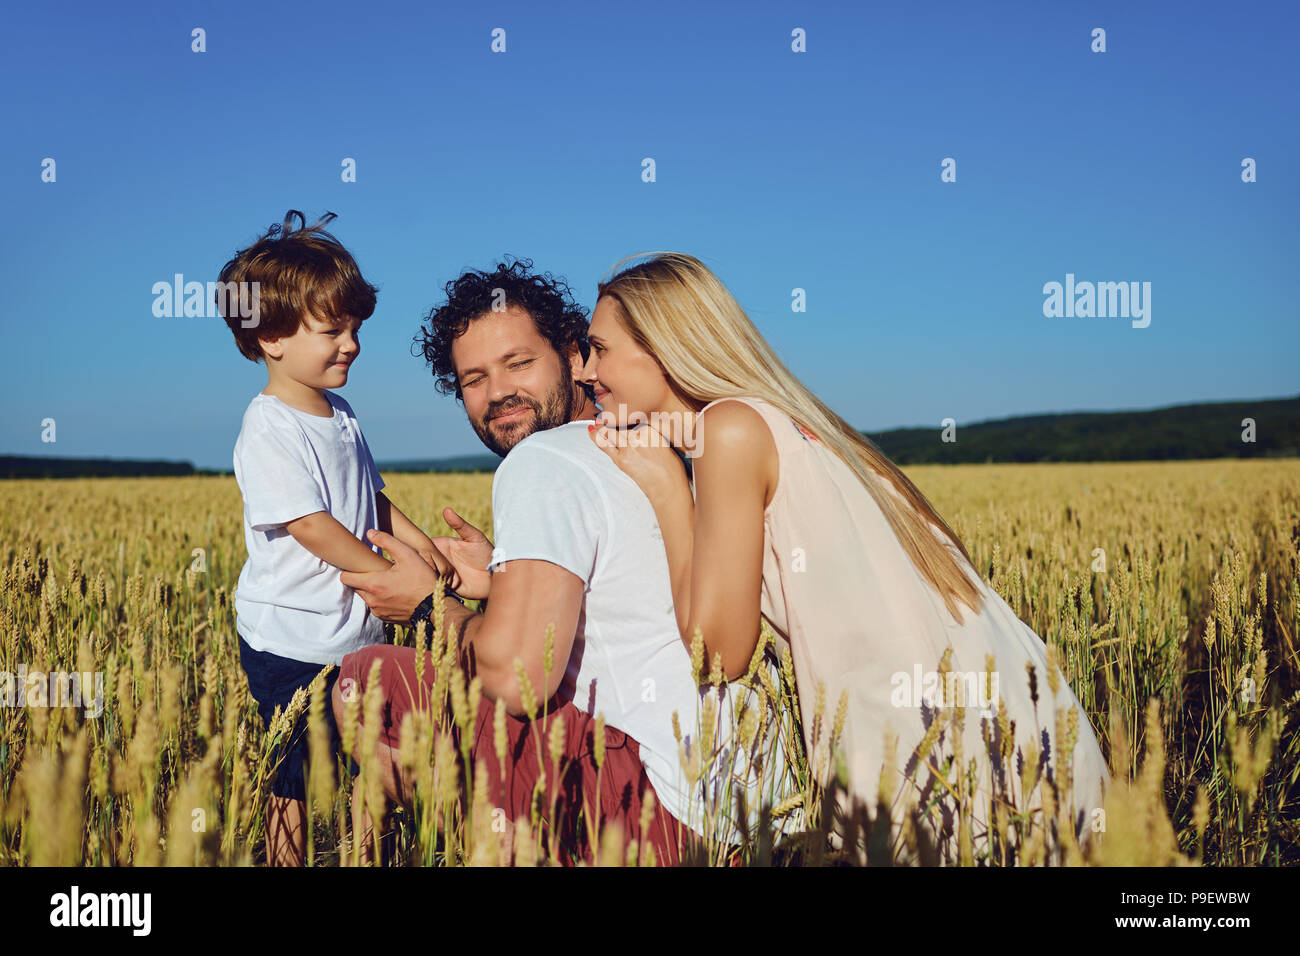 Happy family having fun playing  in the field. - Stock Image